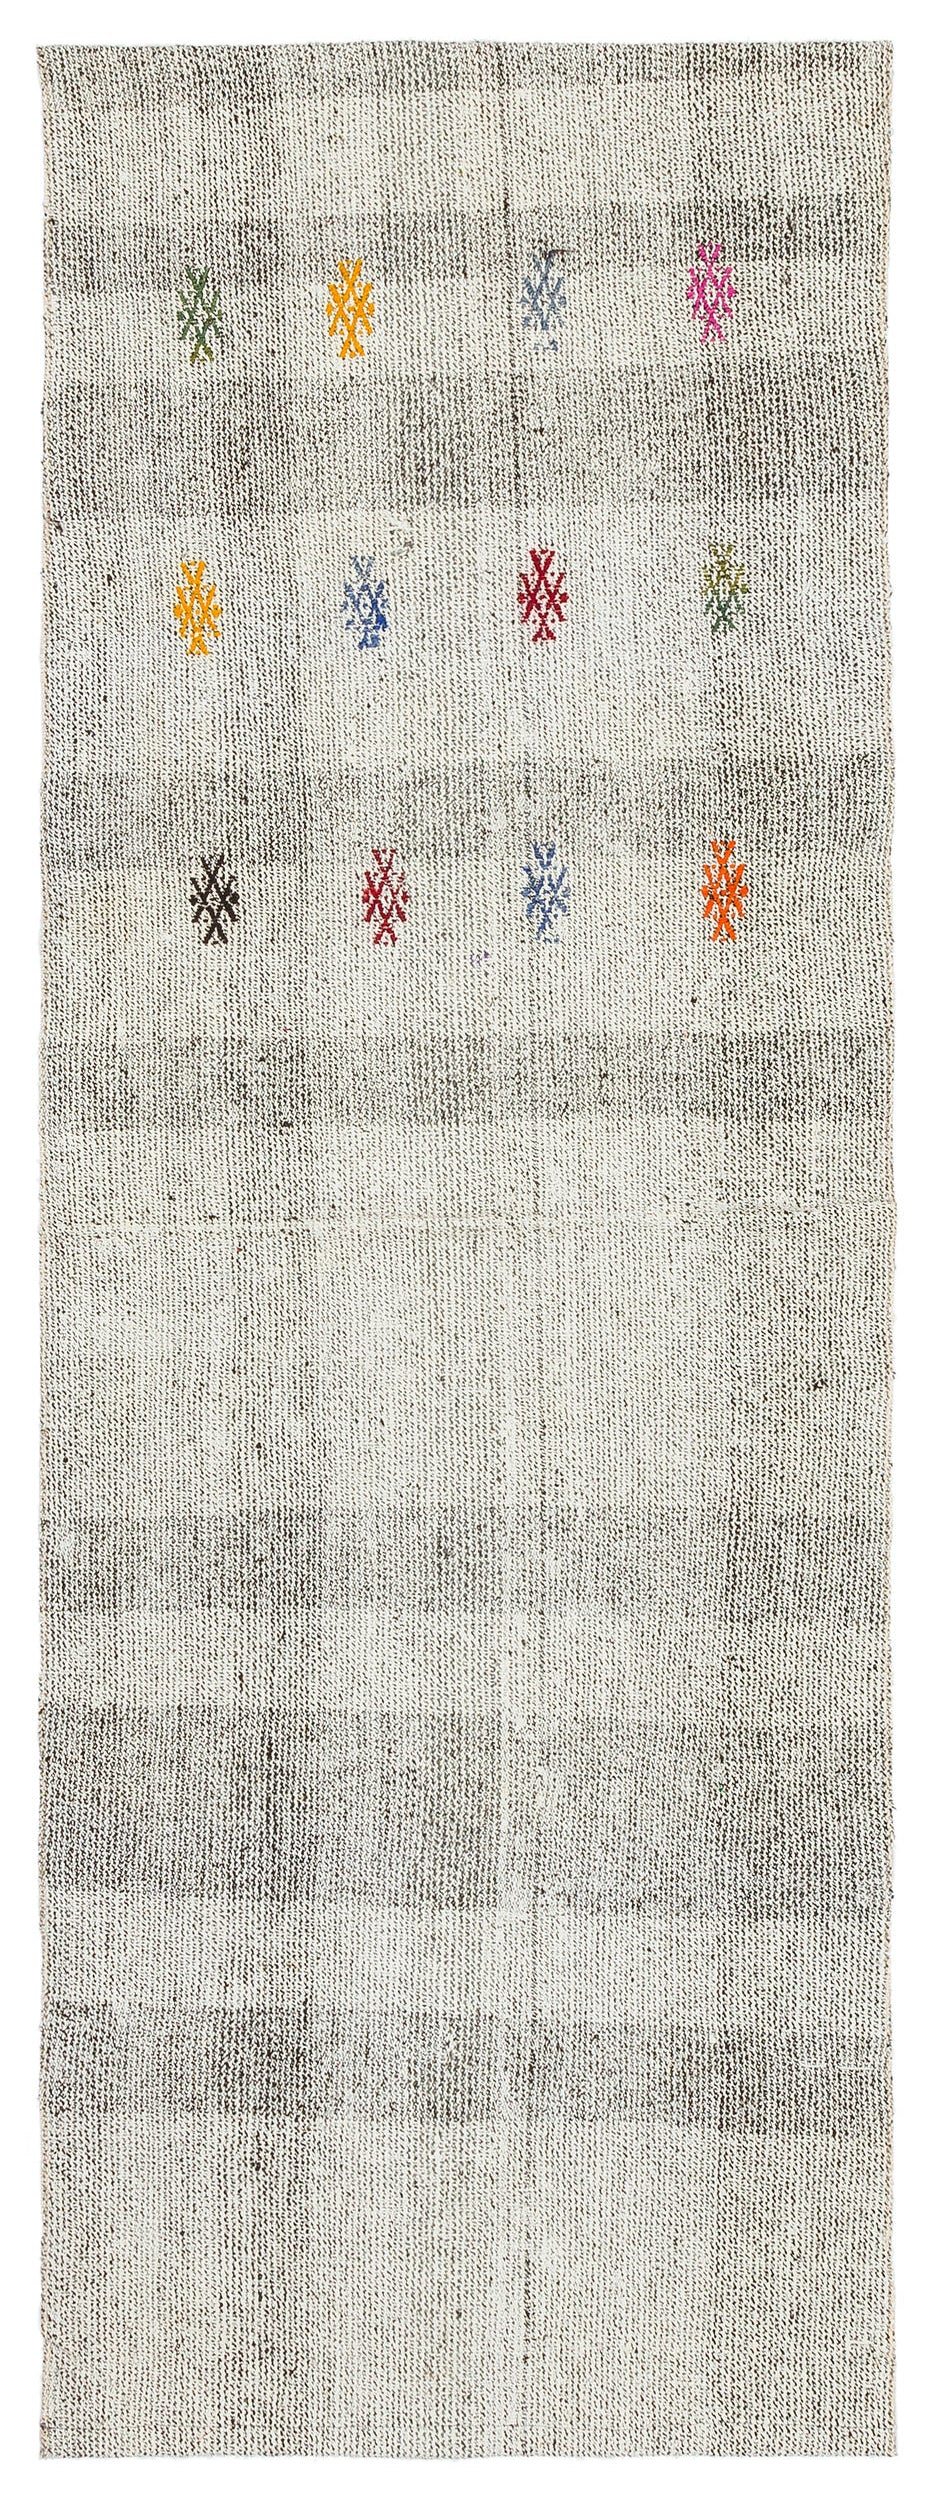 Chaput Over Dyed Kilim Rug 2'3'' x 6'5'' ft 69 x 196 cm